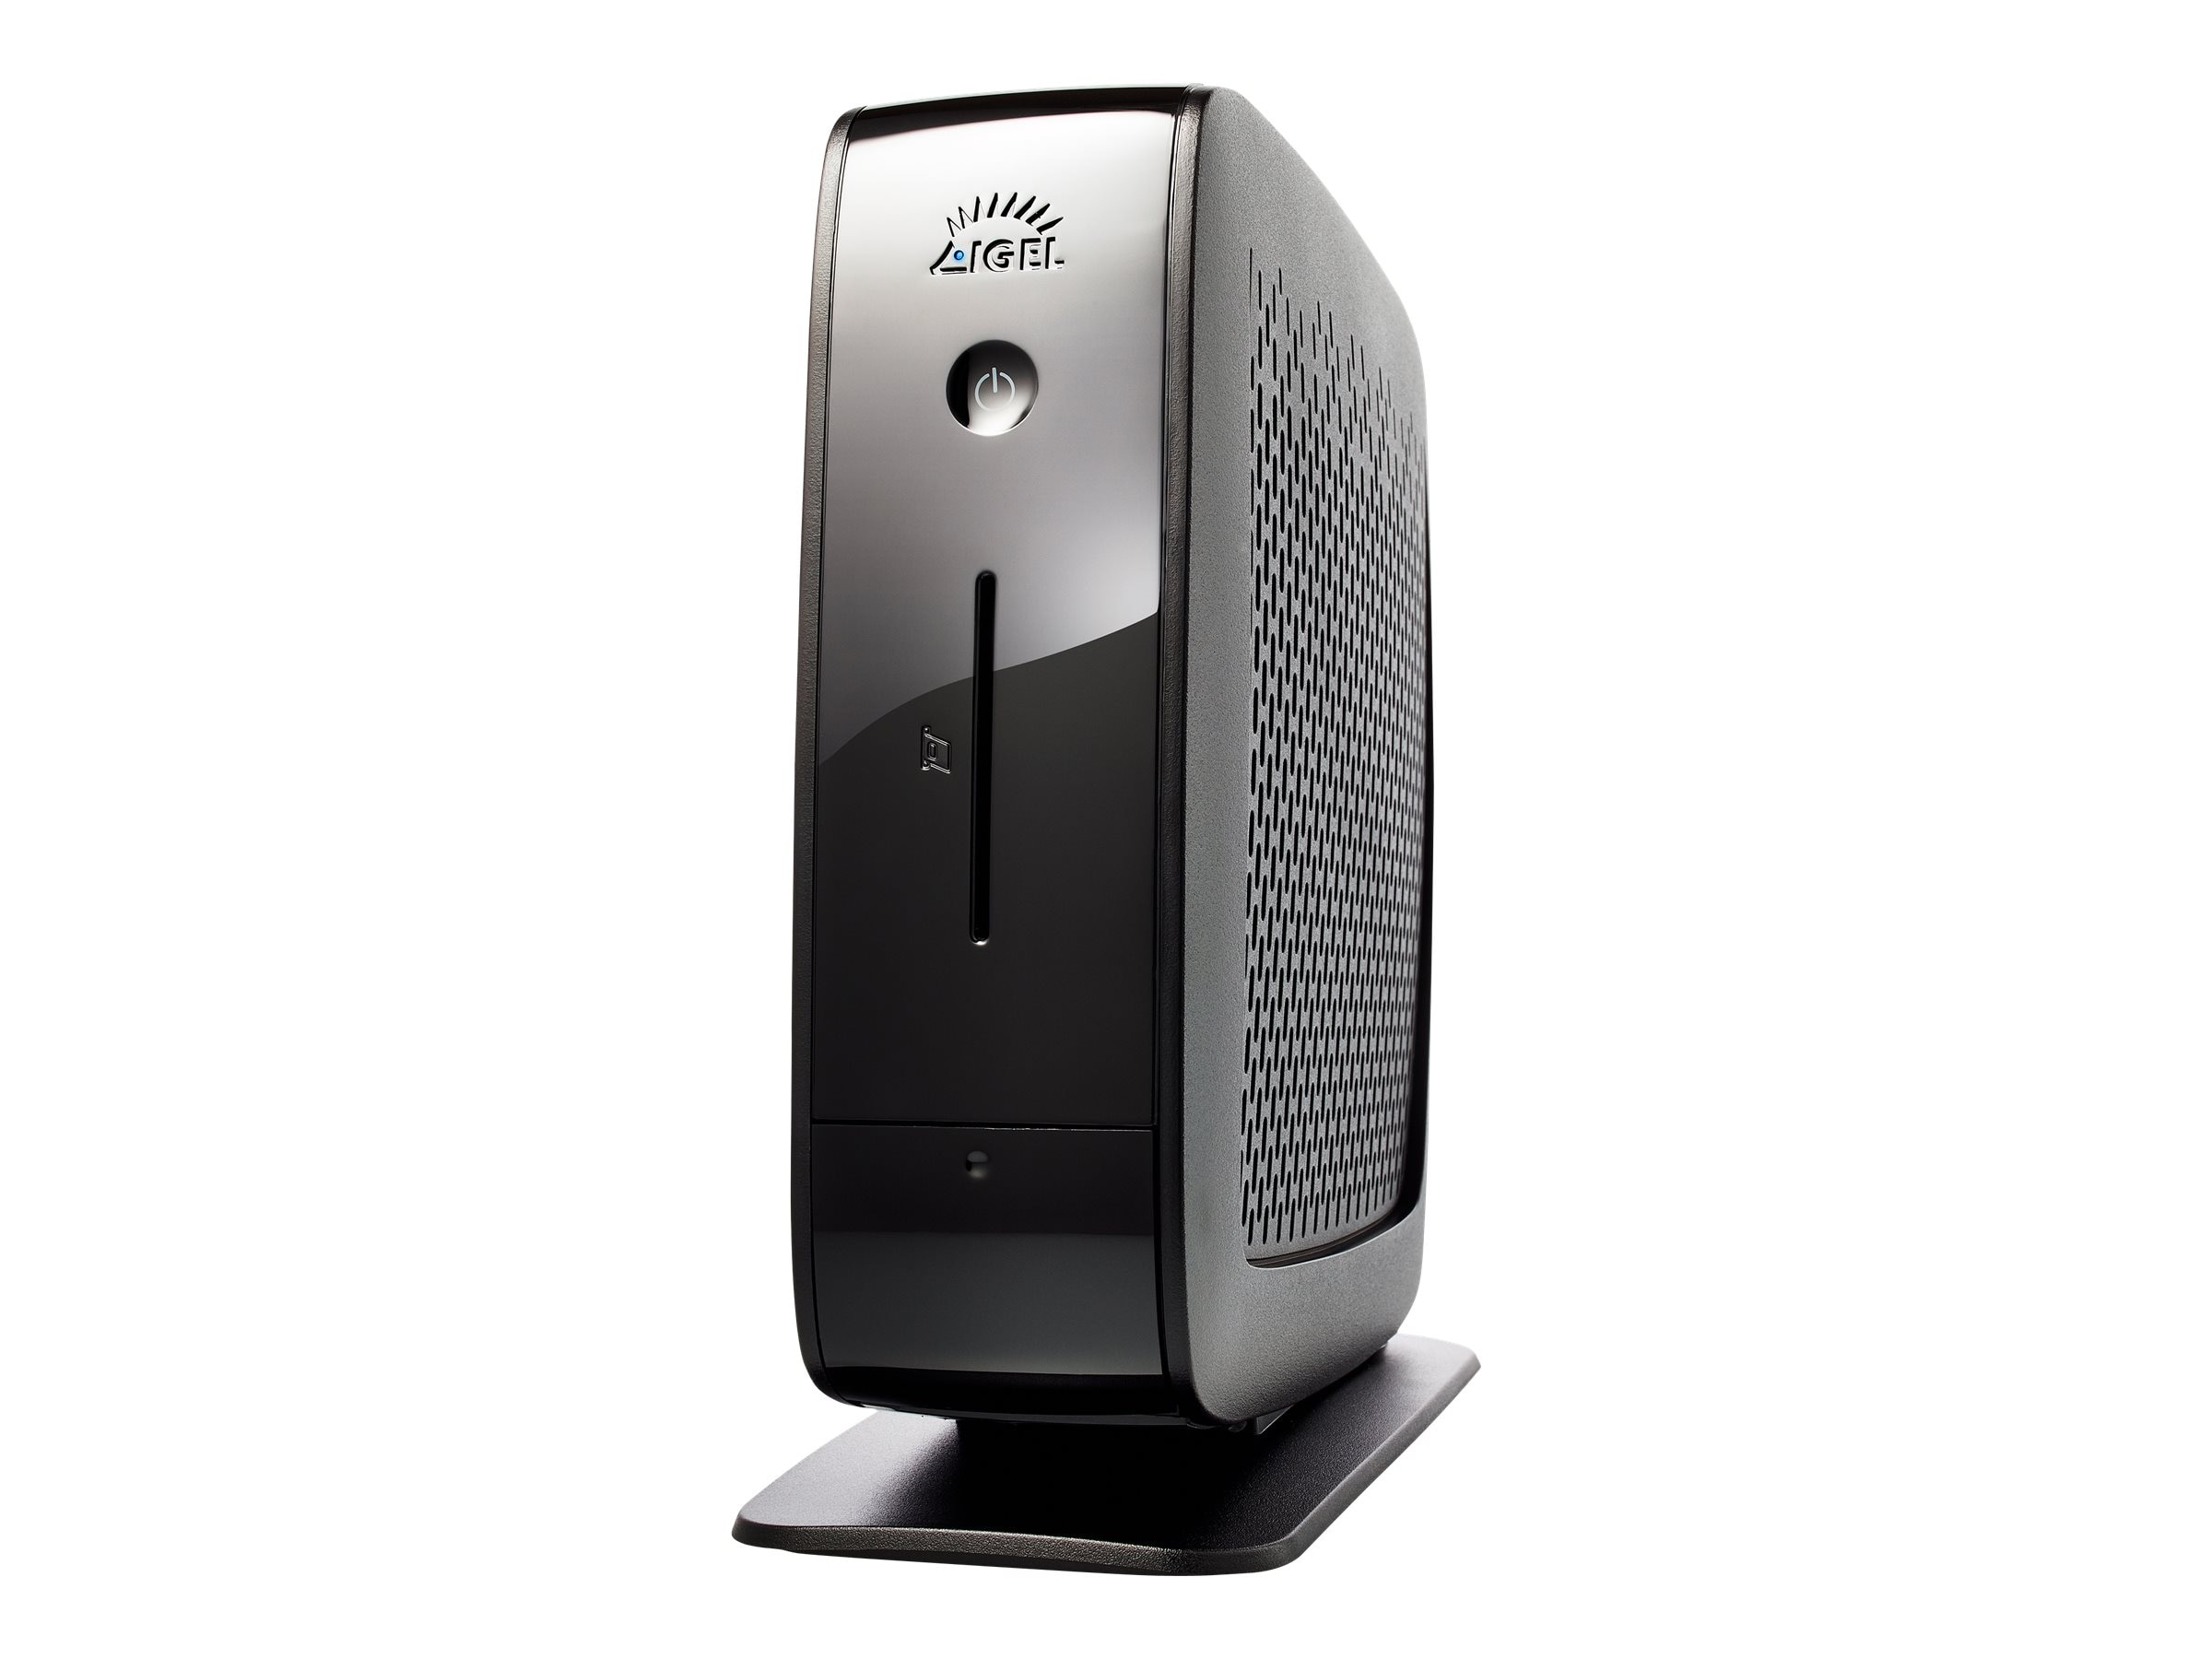 IGEL UD5 Universal Desktop Thin Client Celeron 847 1.1GHz 2GB RAM 4GB Flash GbE WES7, Black